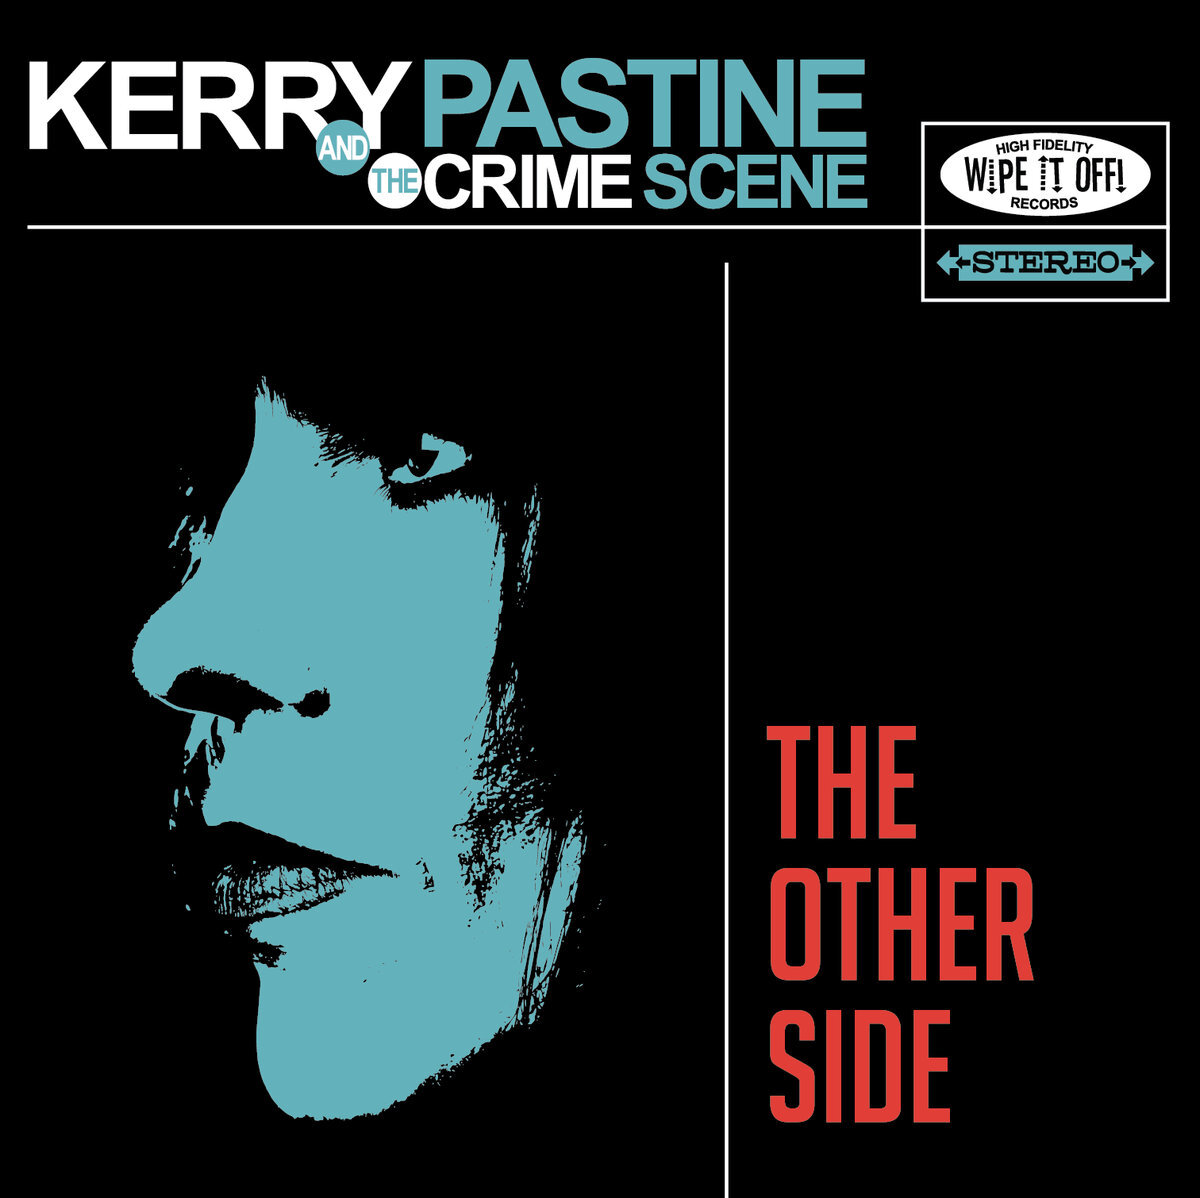 """The Other Side (8/2014) - The debut album that started it all. Kerry & Paul spent over a year writing and recording the initial batch of songs that would become the heart and soul of the Crime Scene. """"The Other Side is the audio proof, an eclectic collection of songs that couldn't have come without raw talent mixed in with all that hard work. Simply put, Pastine's voice could bring the smokiest, sweatiest dive bar to its knees."""" - Colorado Music Buzz"""